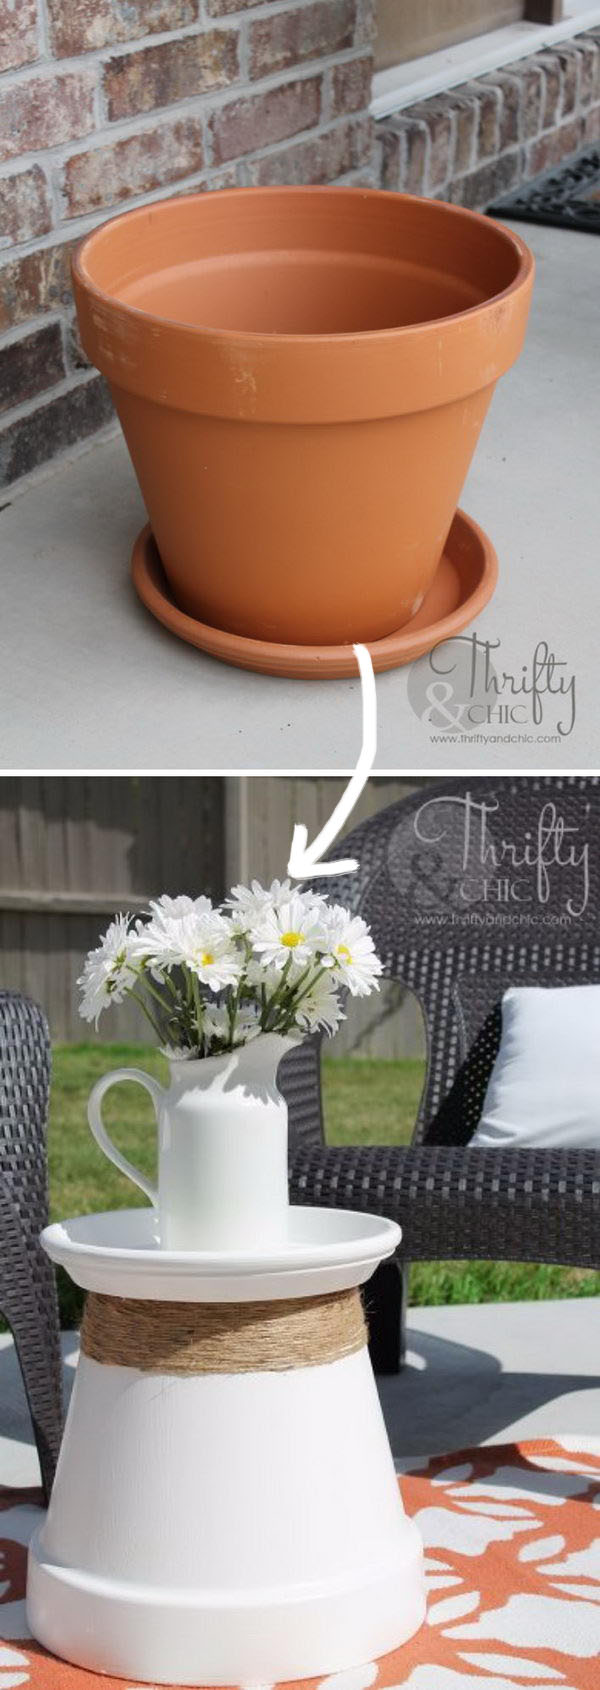 DIY Terracotta Pot Side Table.